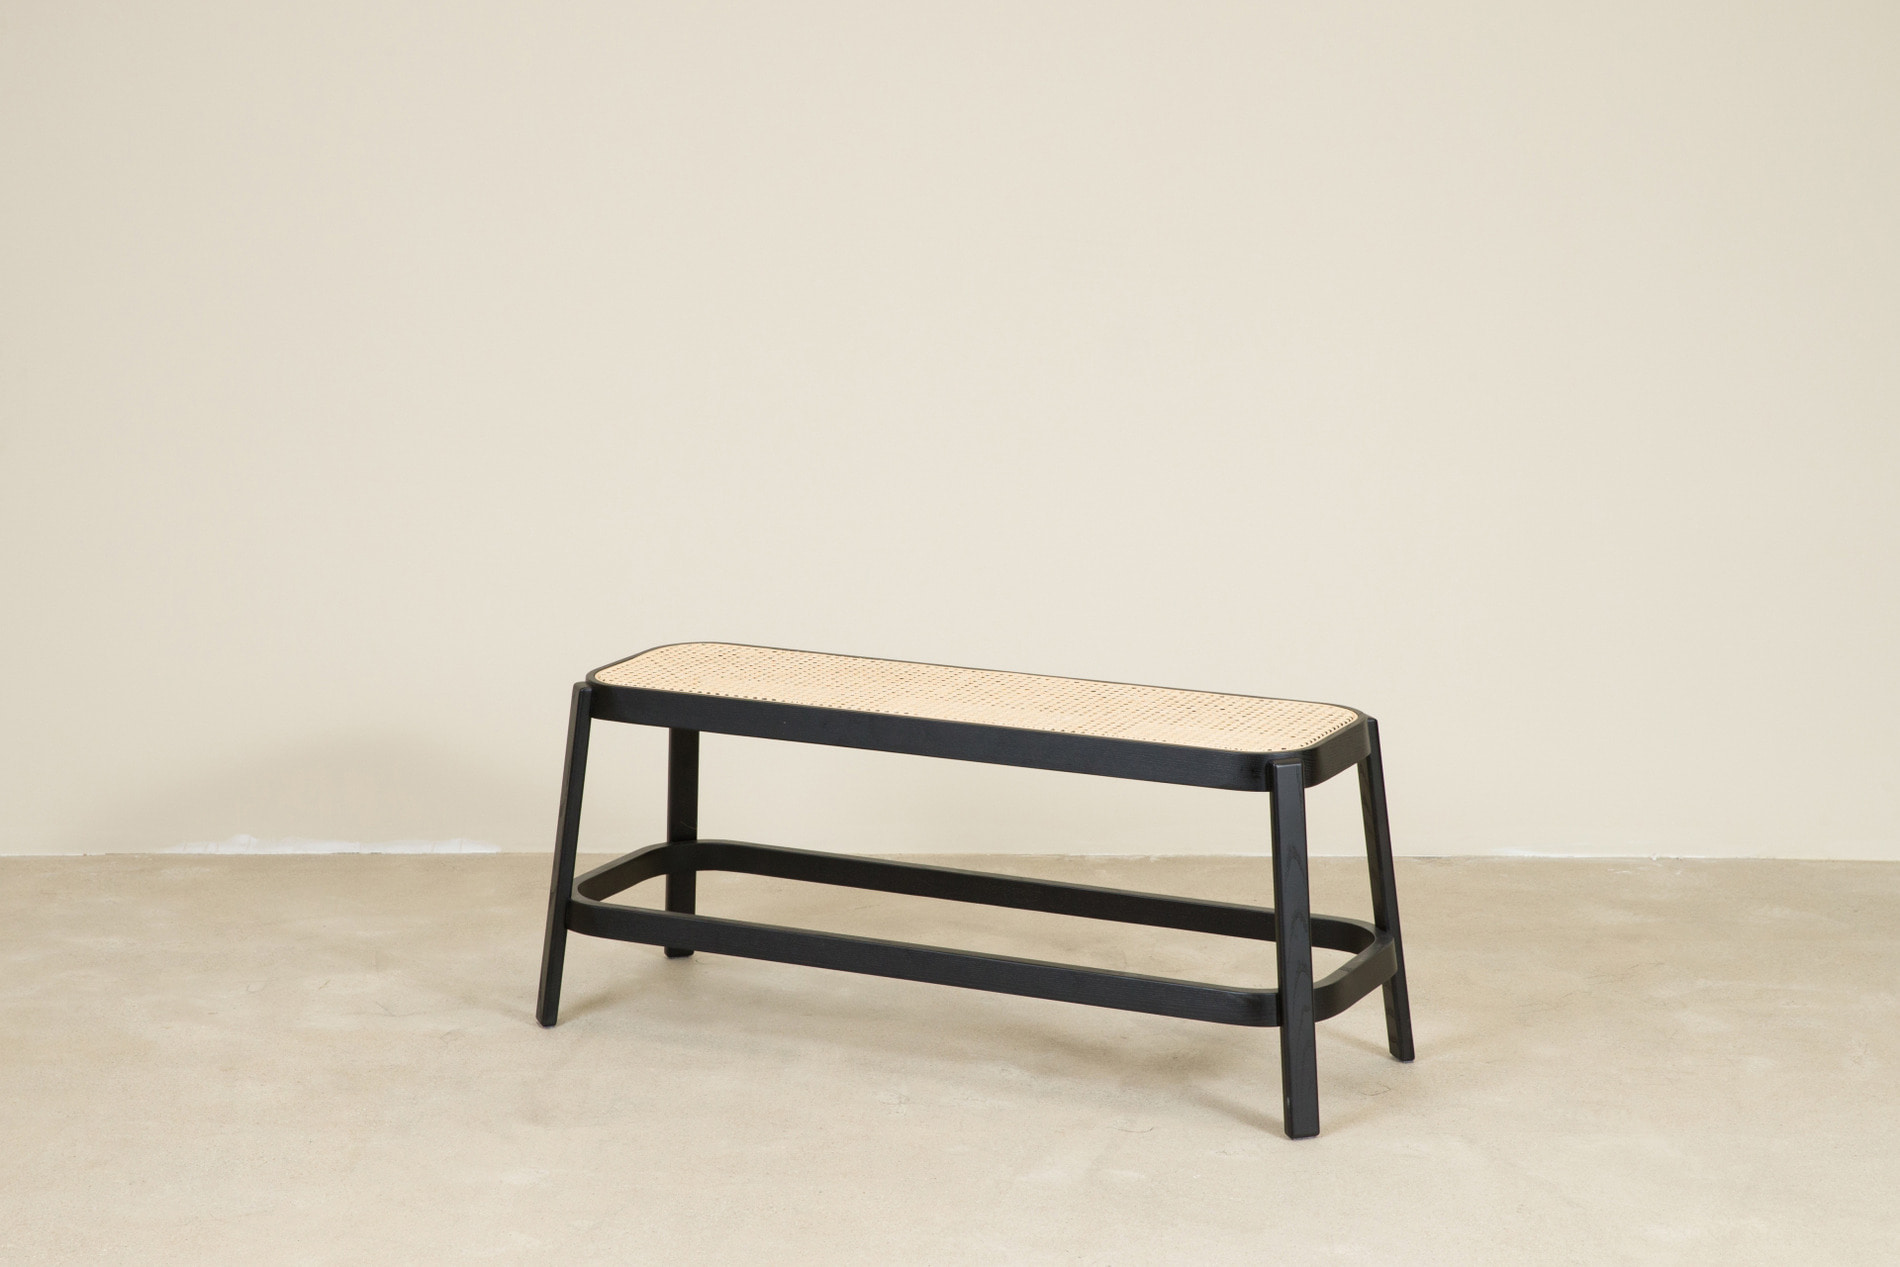 CANE bench, black